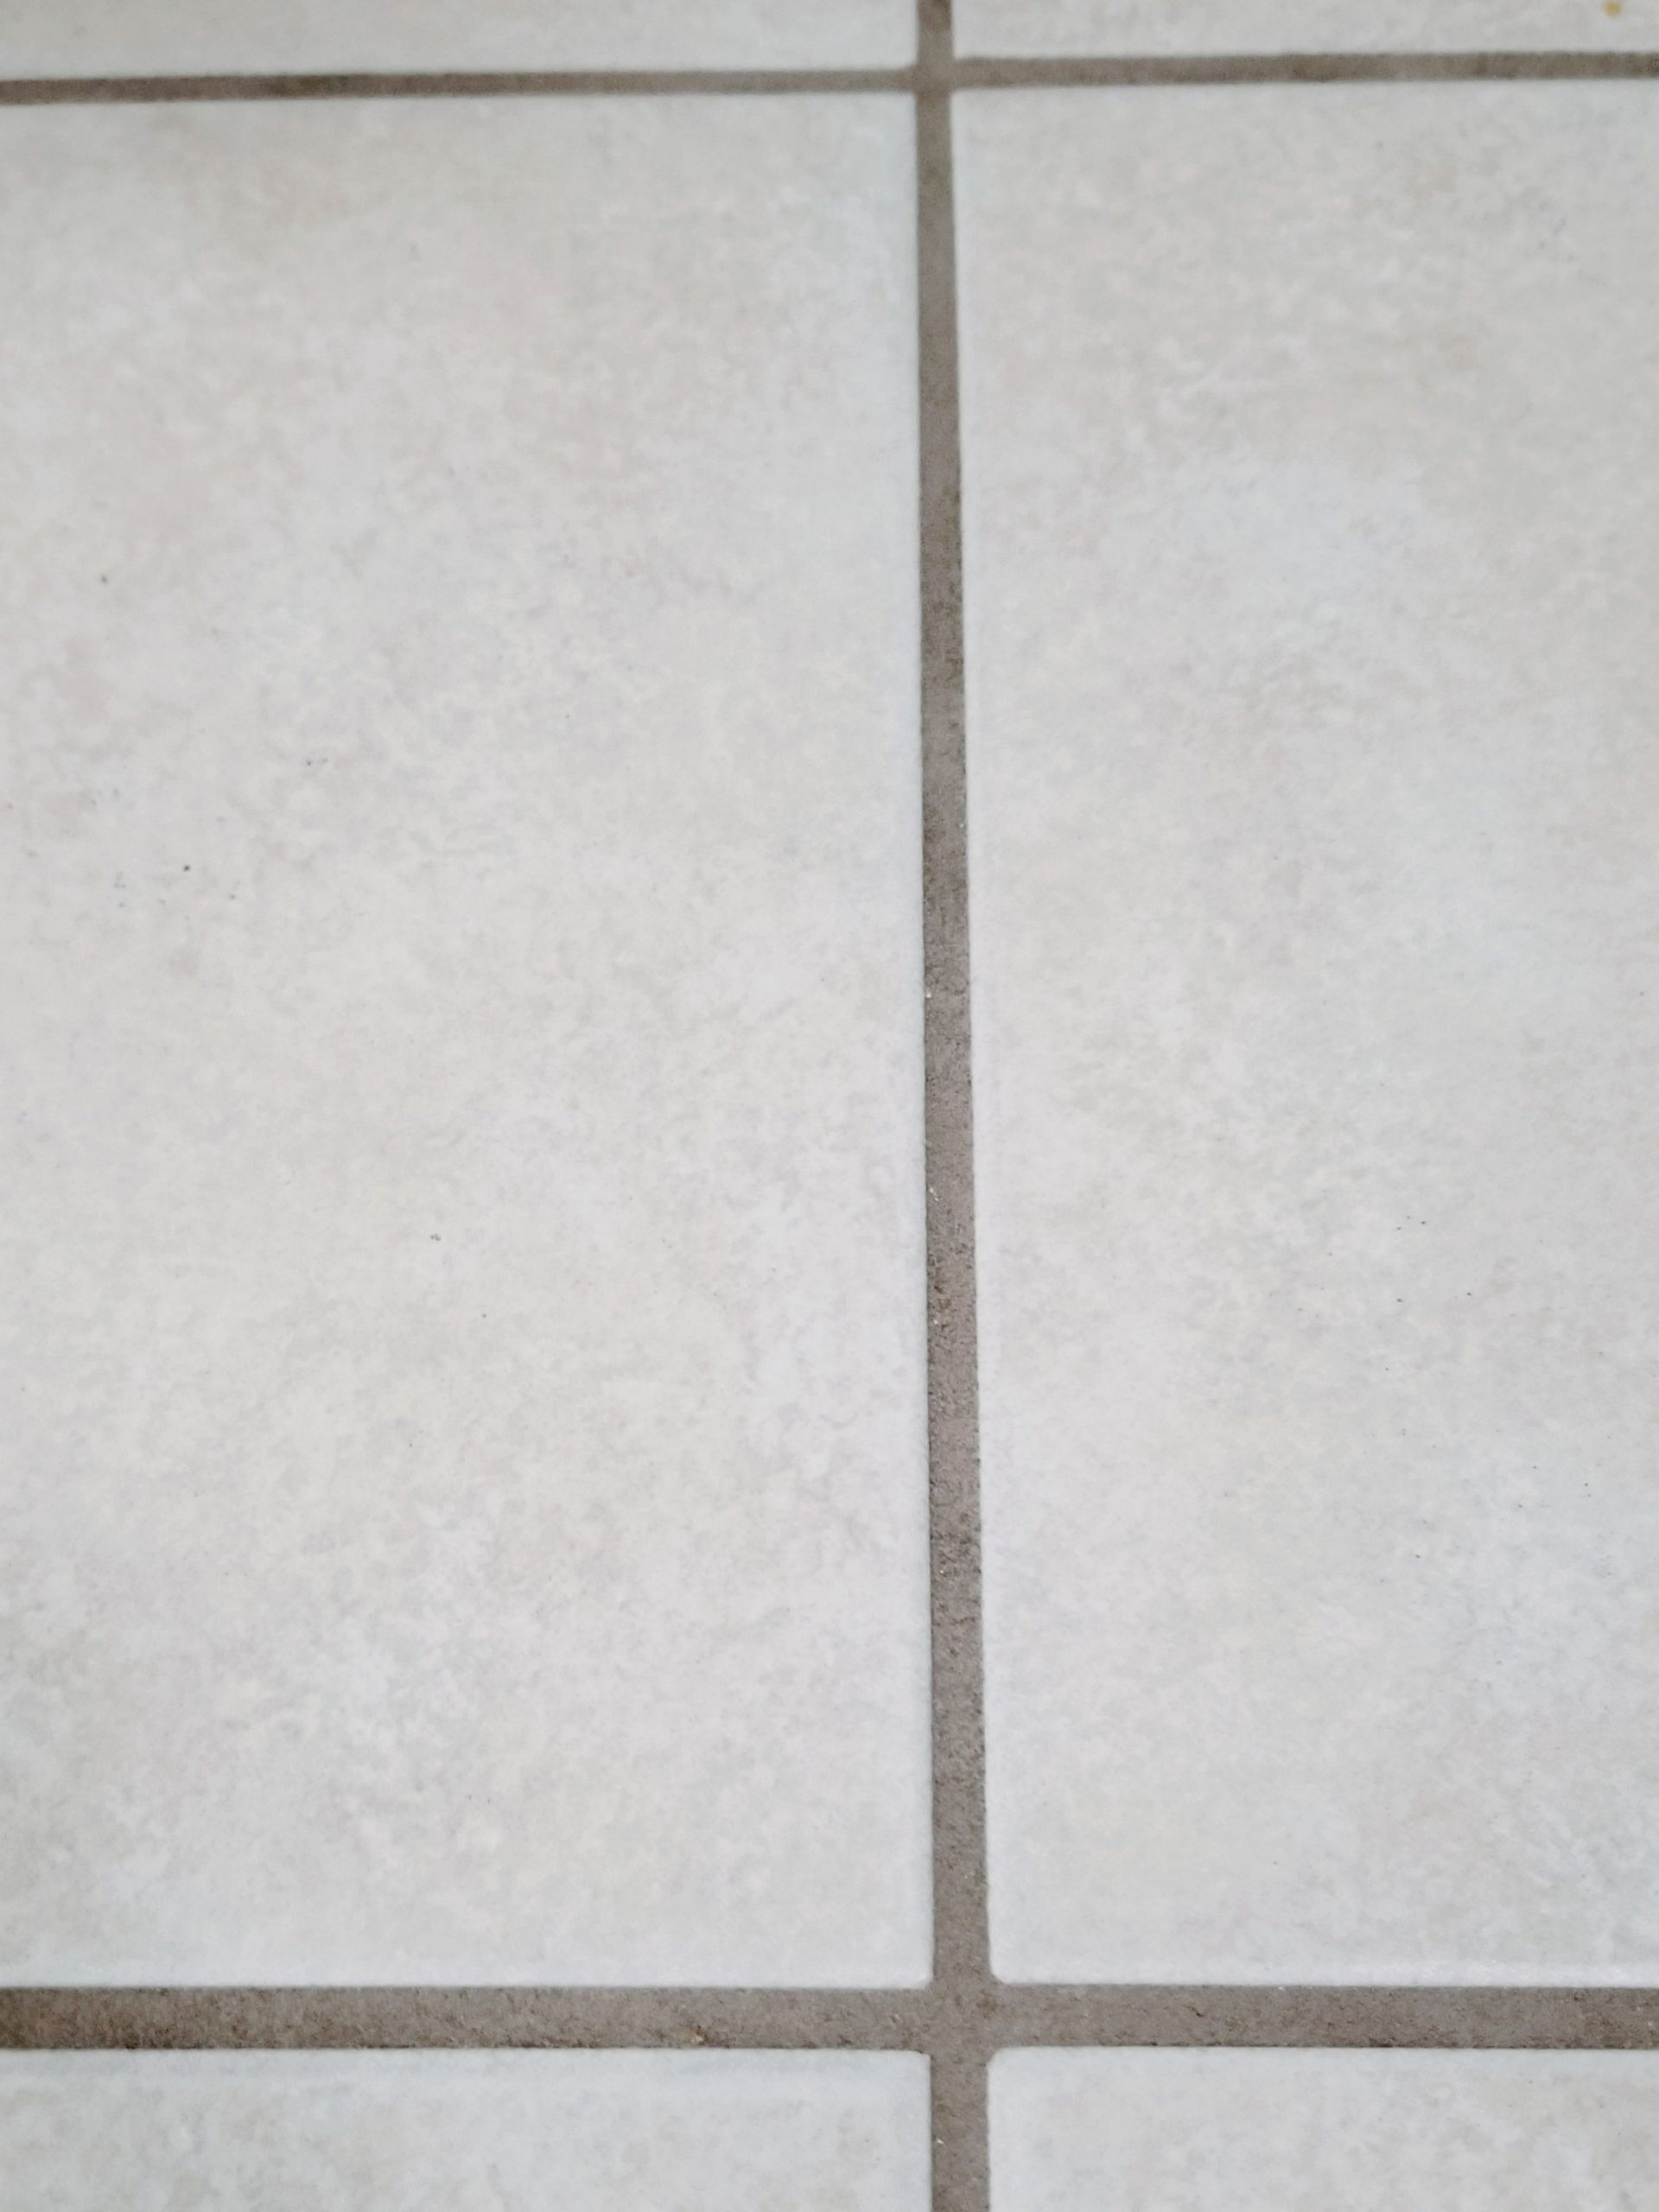 Bissell PowerFresh Deluxe Steam Mop After